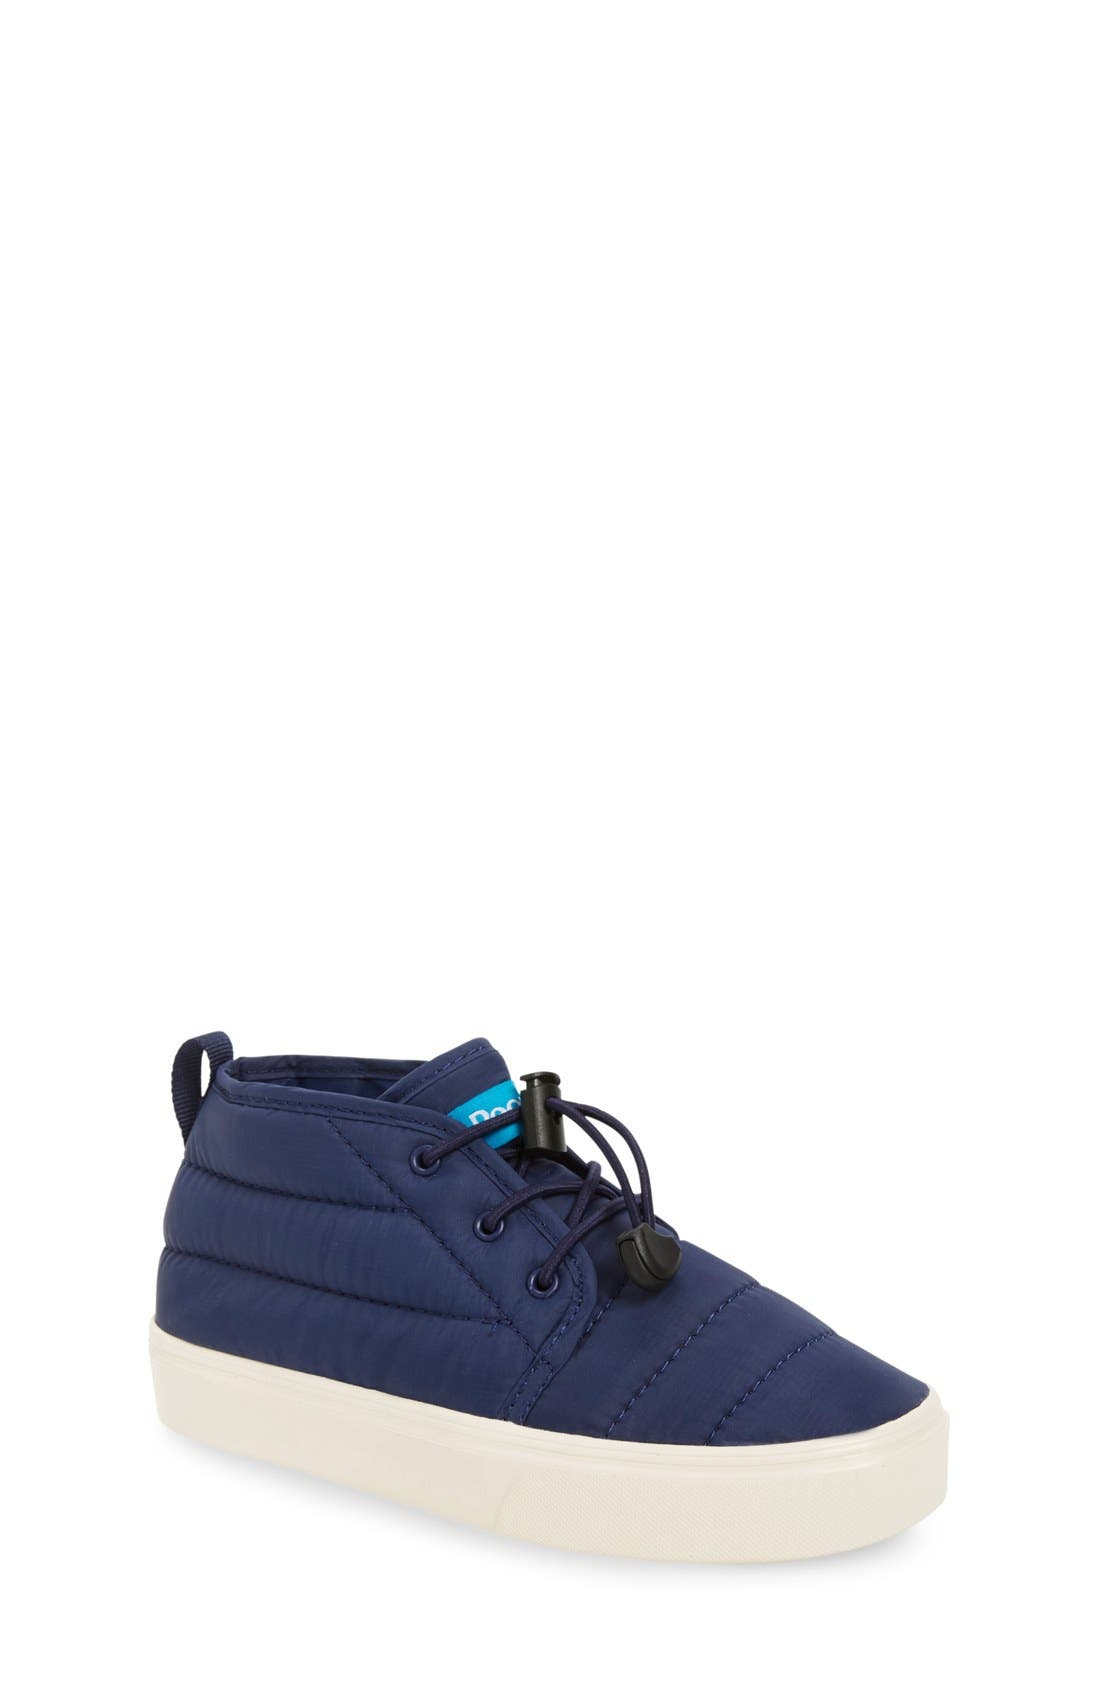 'Cypress' Sneaker,                             Main thumbnail 1, color,                             MARINER BLUE/ PICKET WHITE